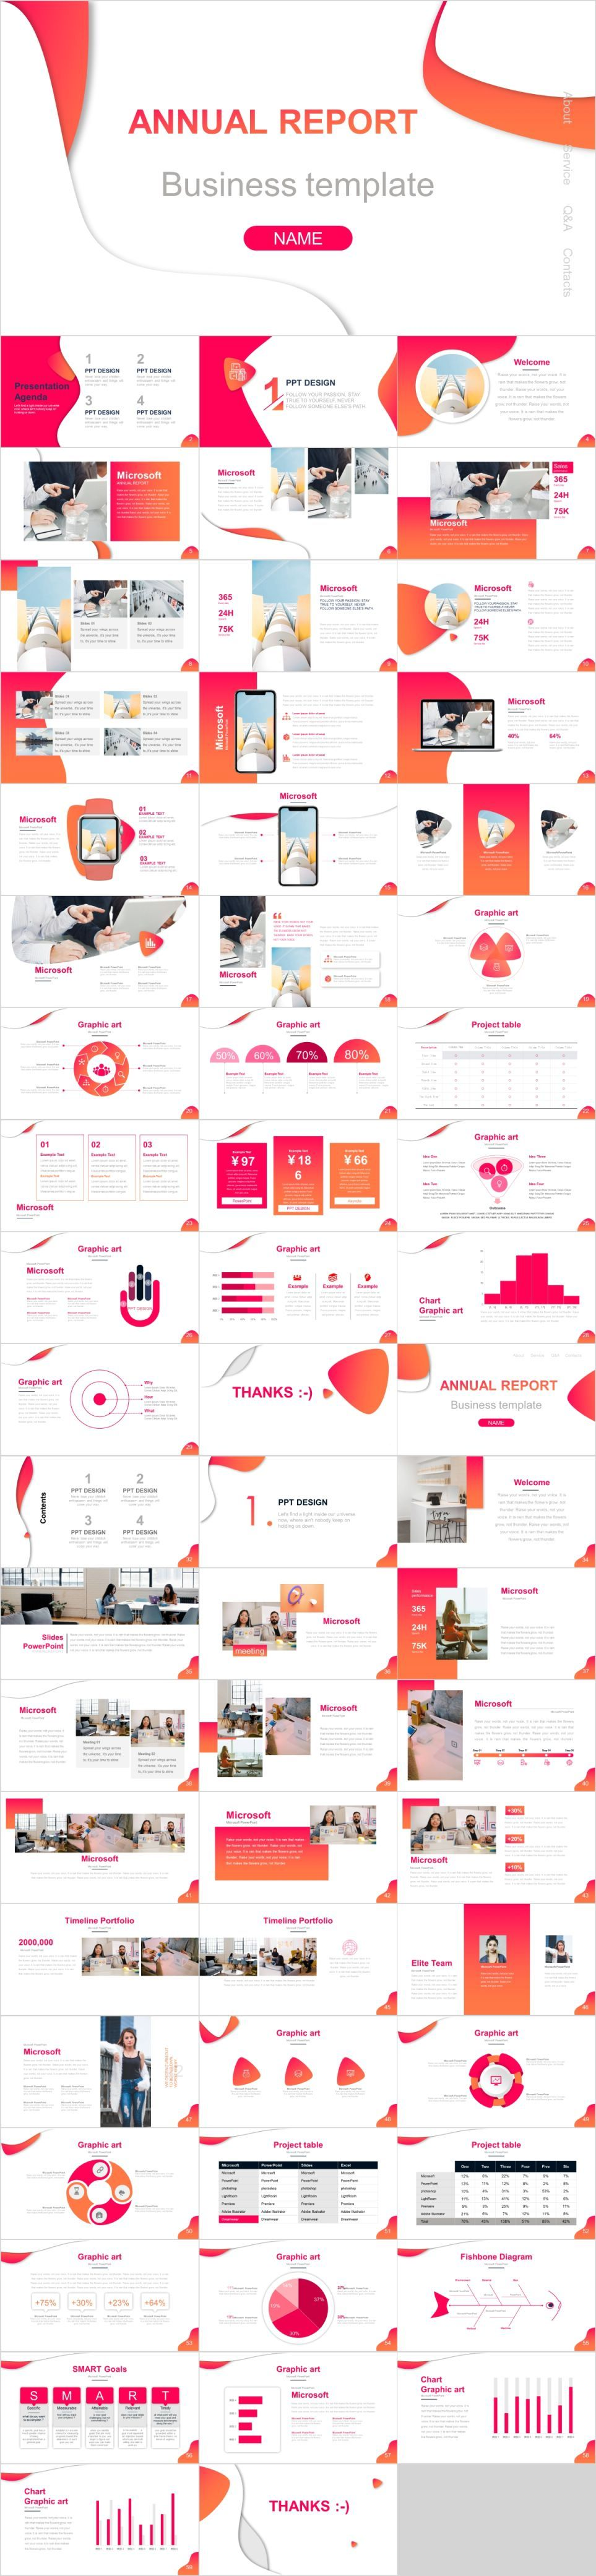 Red annual report PowerPoint template #annualreports